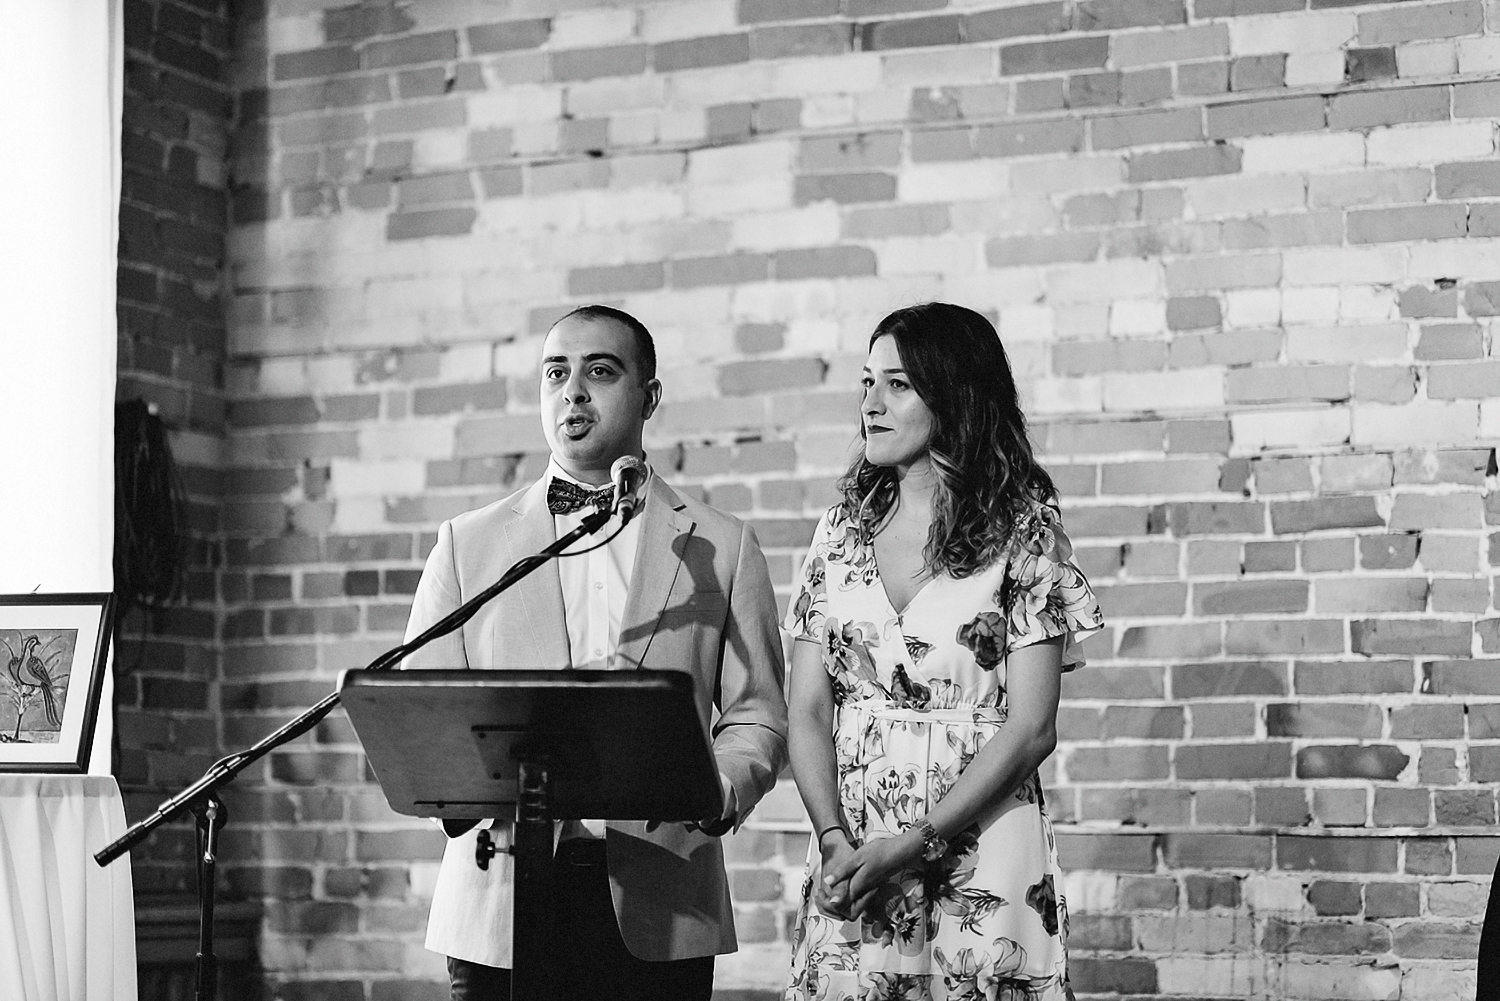 Best-Toronto-Wedding-Photographers-Afforadable-Candid-Photojournalistic-Photography-Toronto-Gladstone-Hotel-Wedding-Venue-Downtown-Urban-Brunch-Wedding-Inspiration-persian-ceremony-MC.jpg